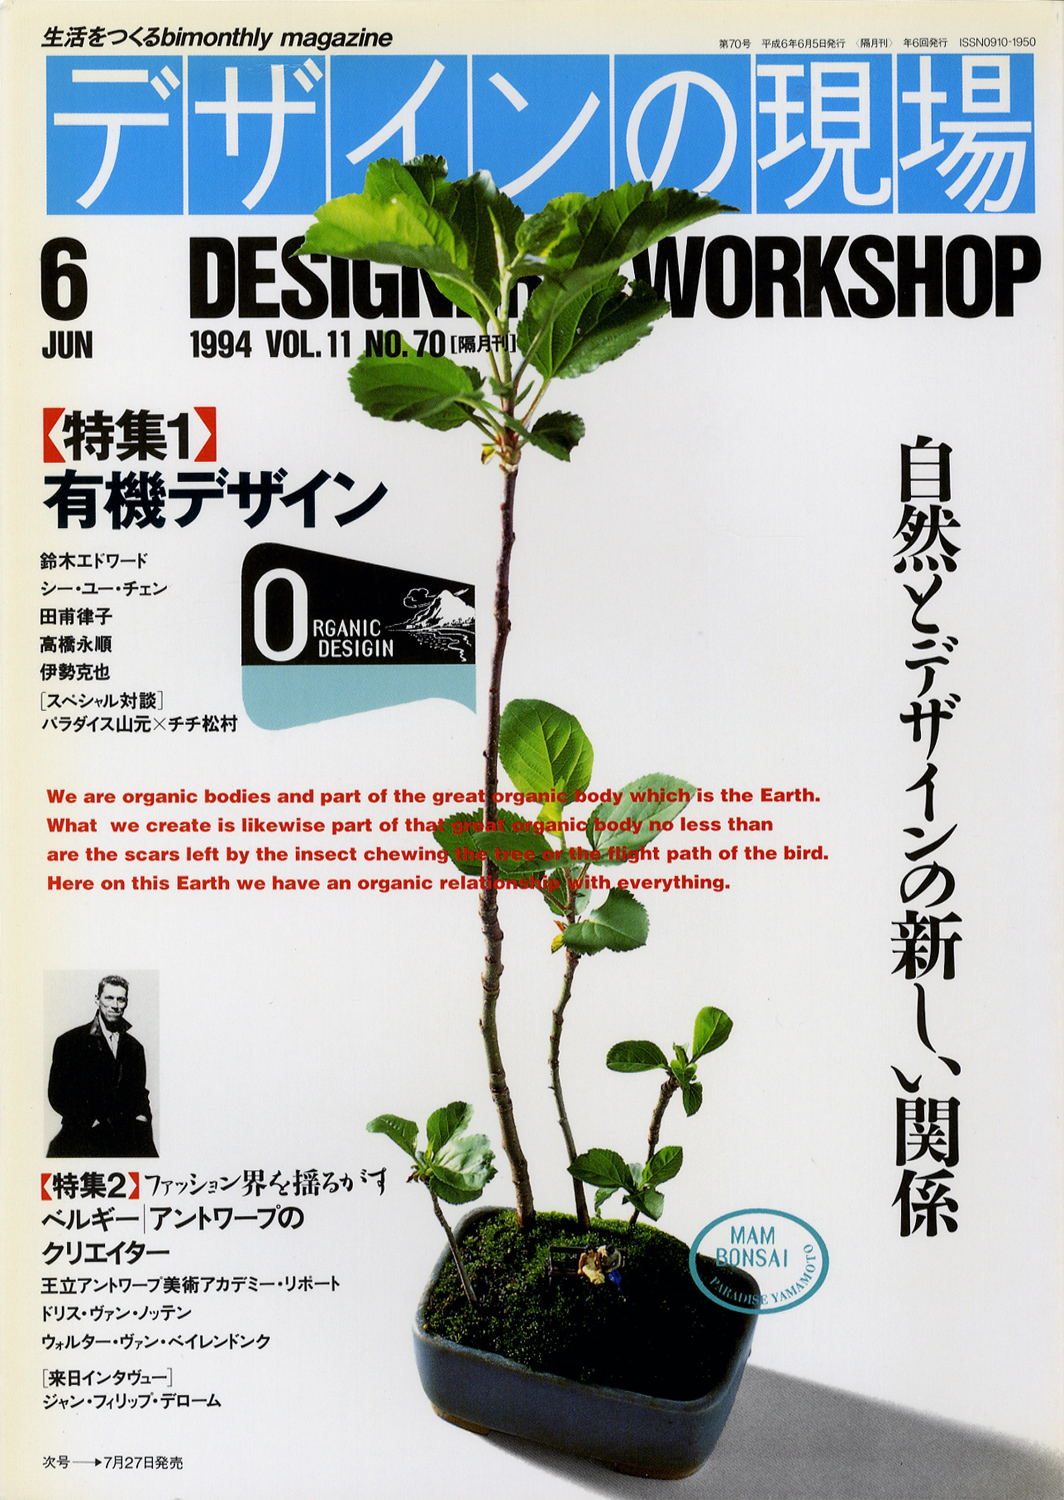 デザインの現場 DESIGNERS' WORKSHOP VOL.11 NO.70